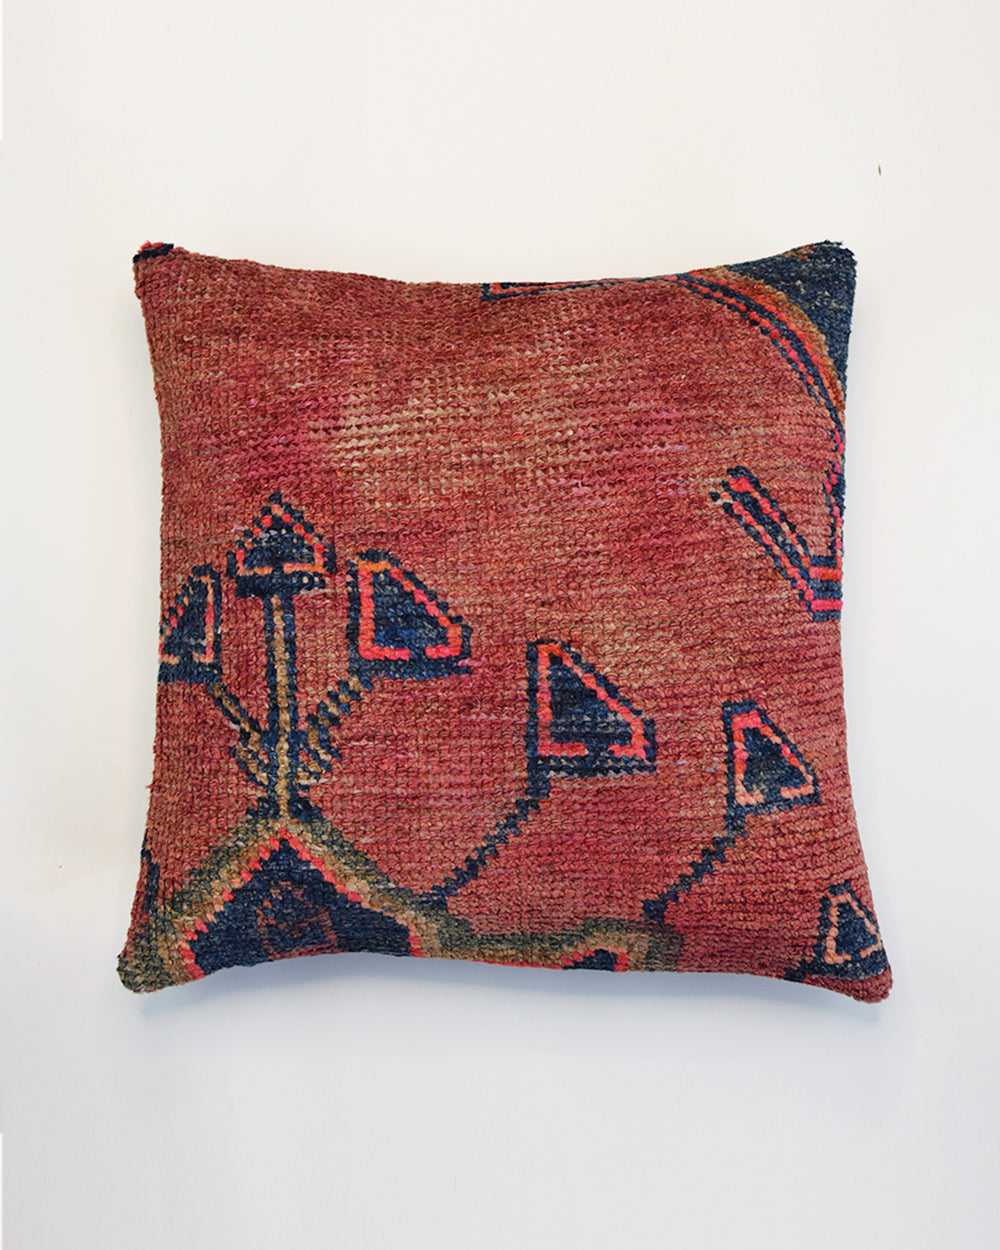 Cushion Cover No. 20